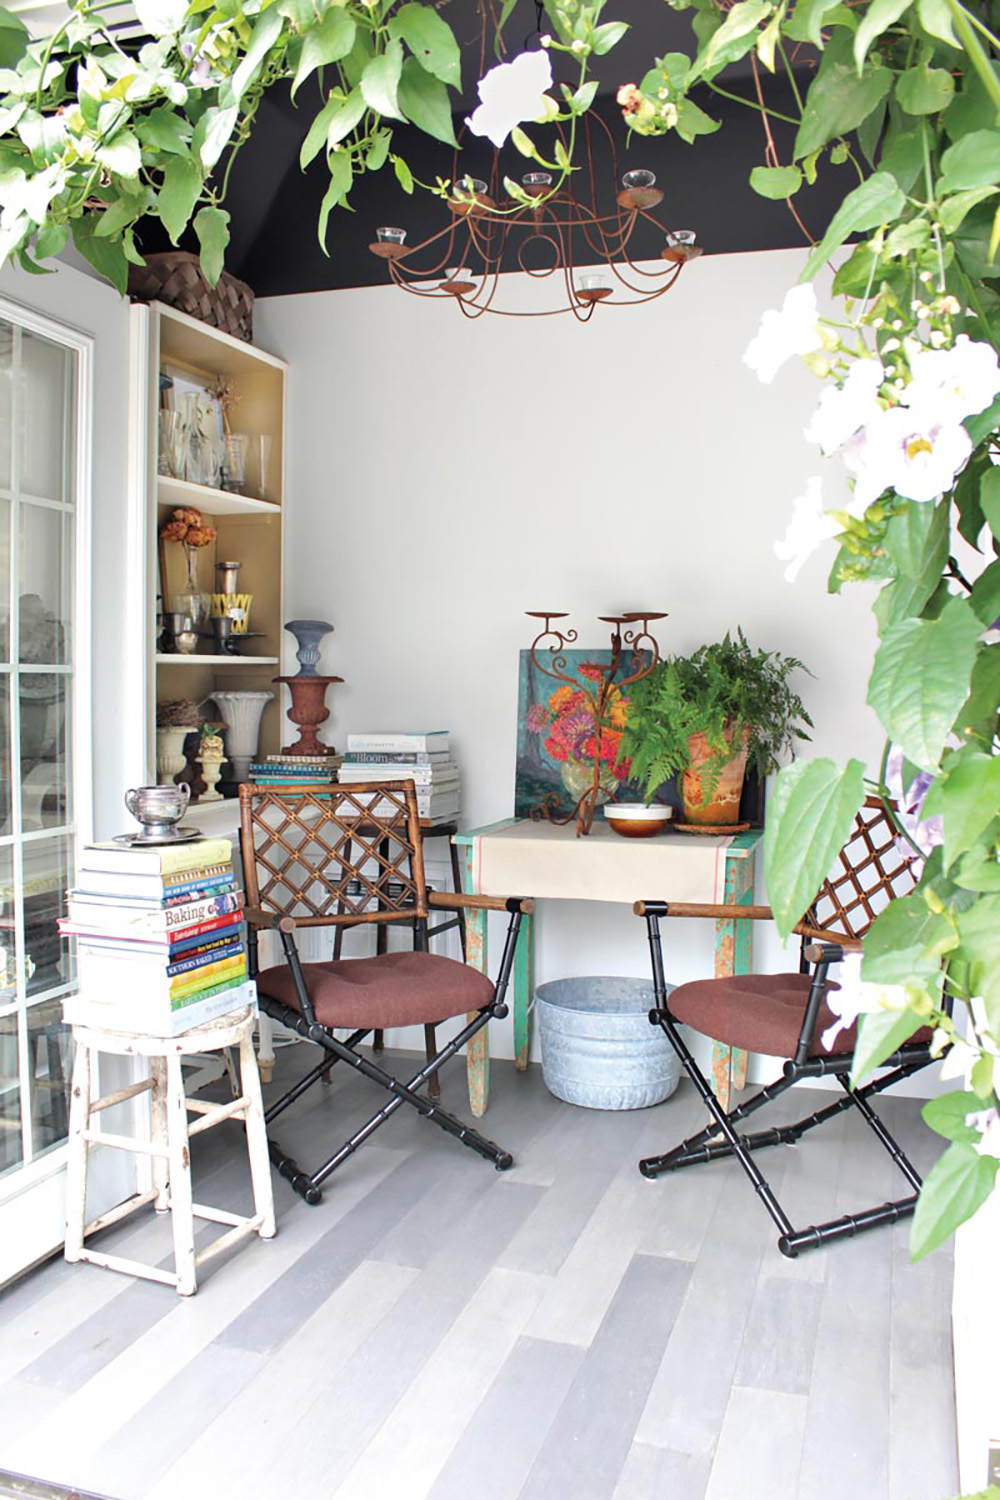 artful shed with contemporary chairs and accessories